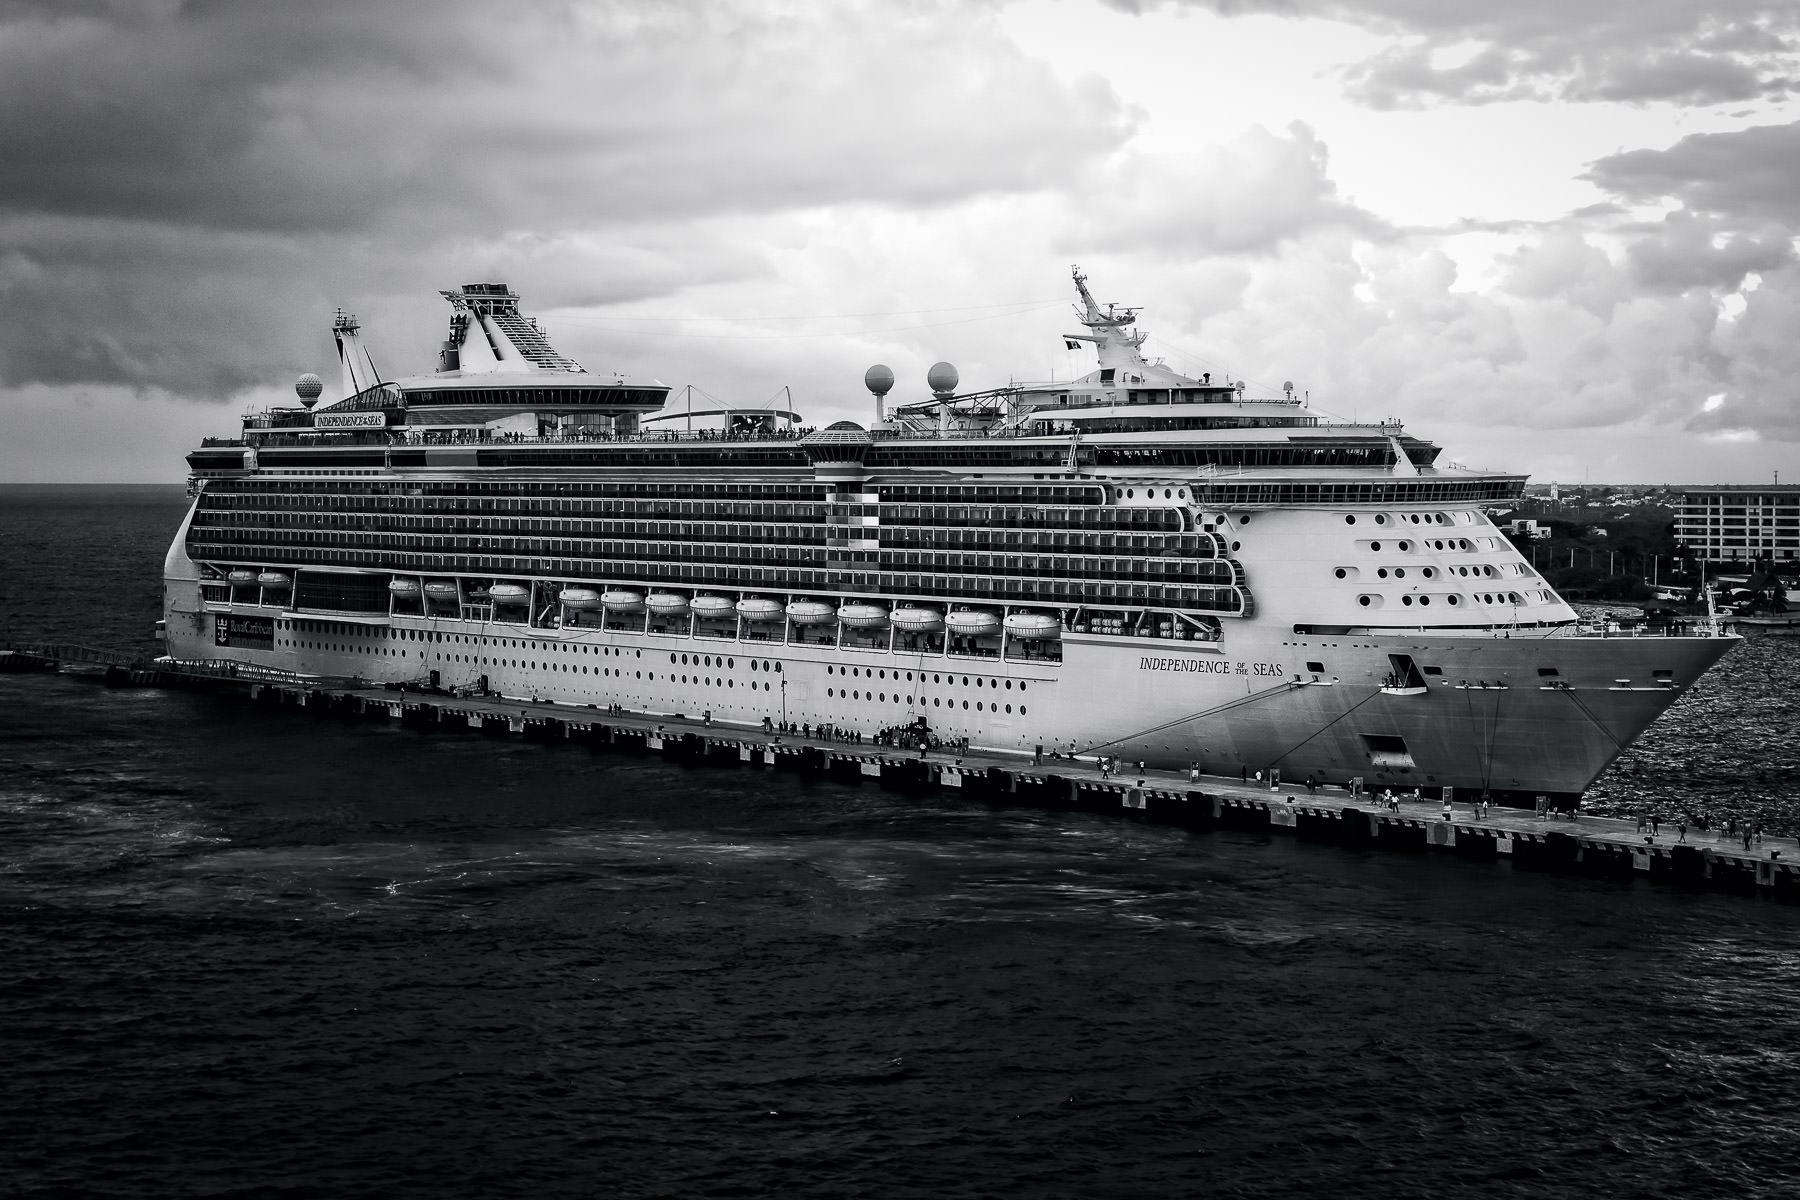 The Royal Caribbean cruise ship Independence of the Seas, docked in Cozumel, Mexico.